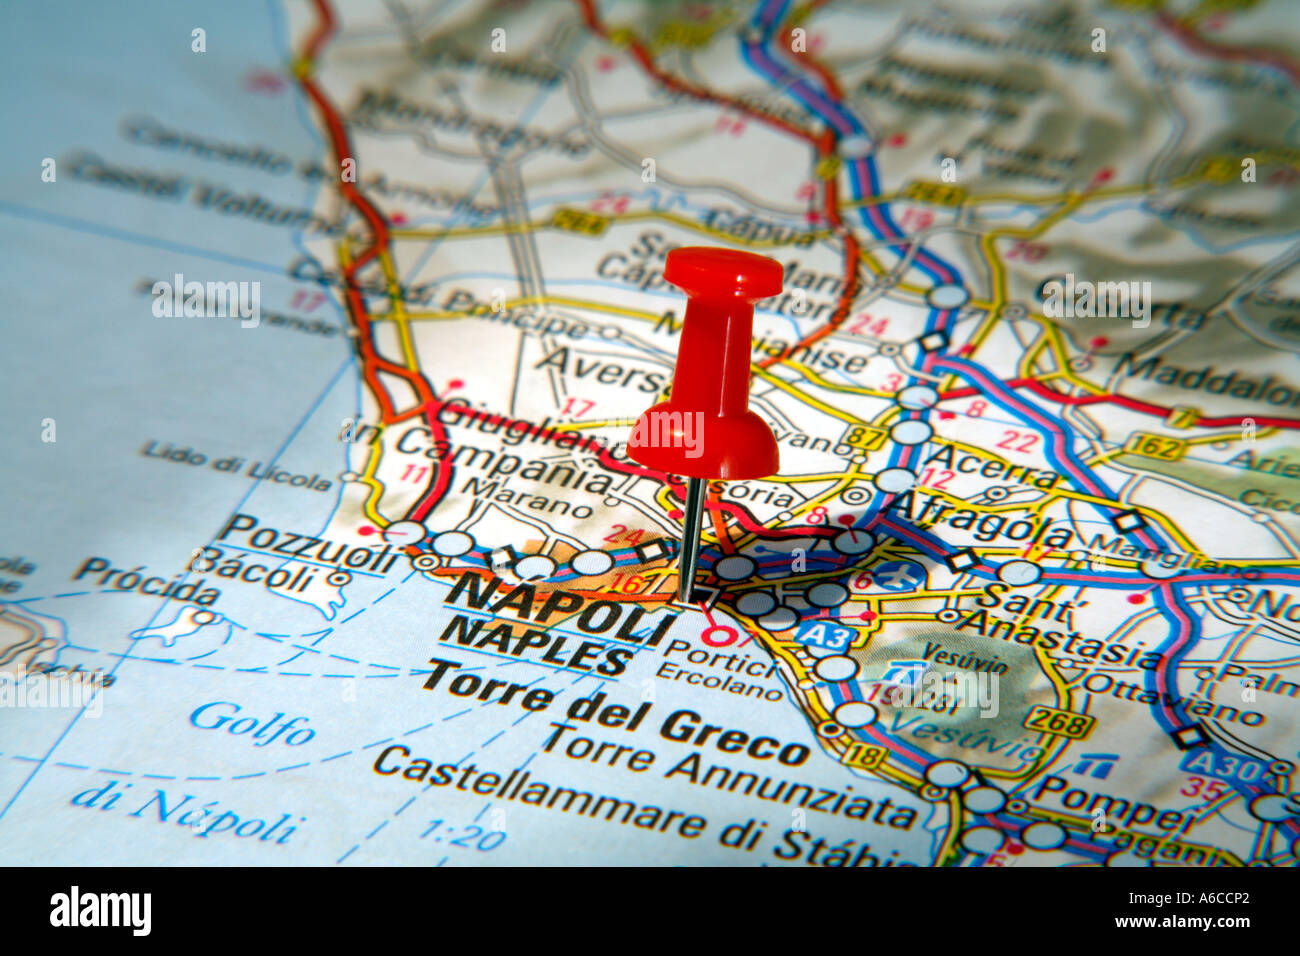 Map Pin pointing to Naples Italy on a road map Stock Photo